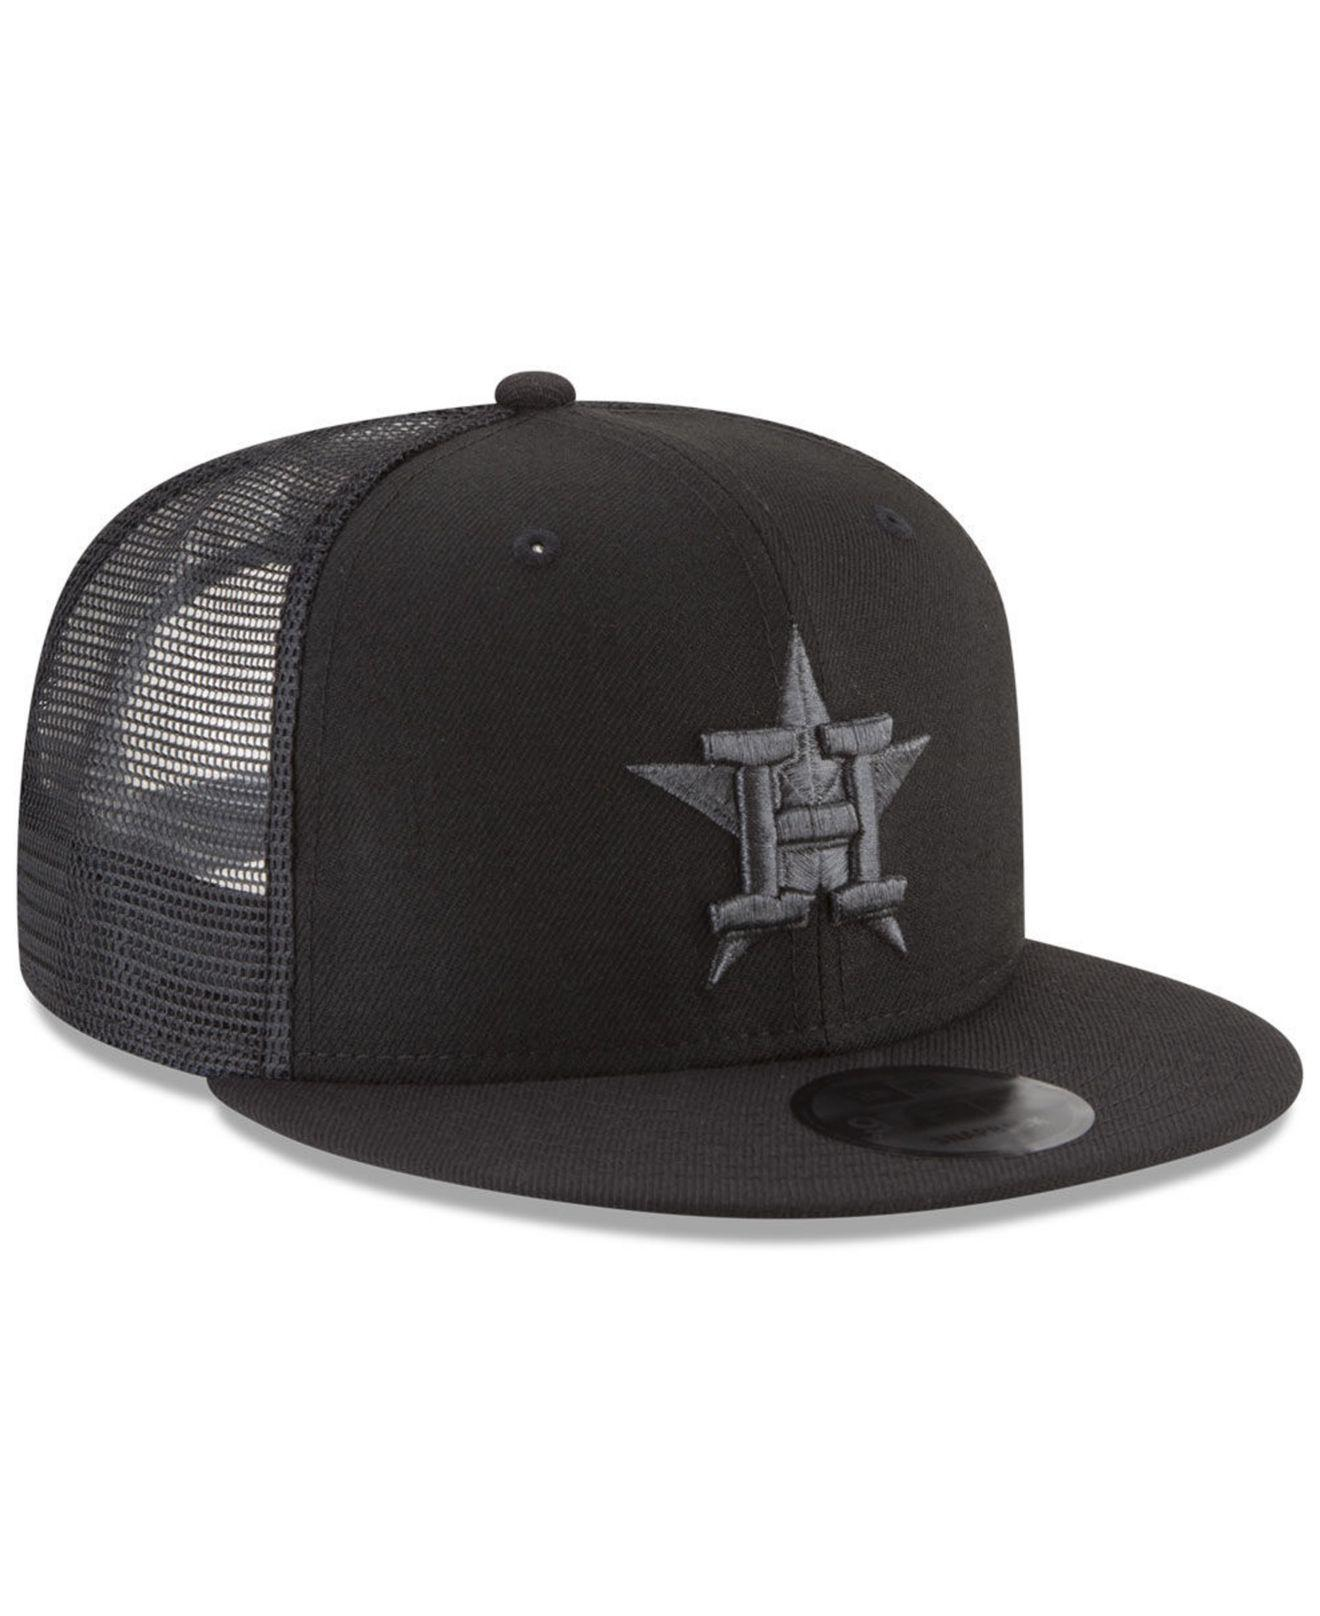 info for 77c1f 24e06 ... discount code for lyst ktz houston astros blackout mesh 9fifty snapback  cap in black f6493 7f423